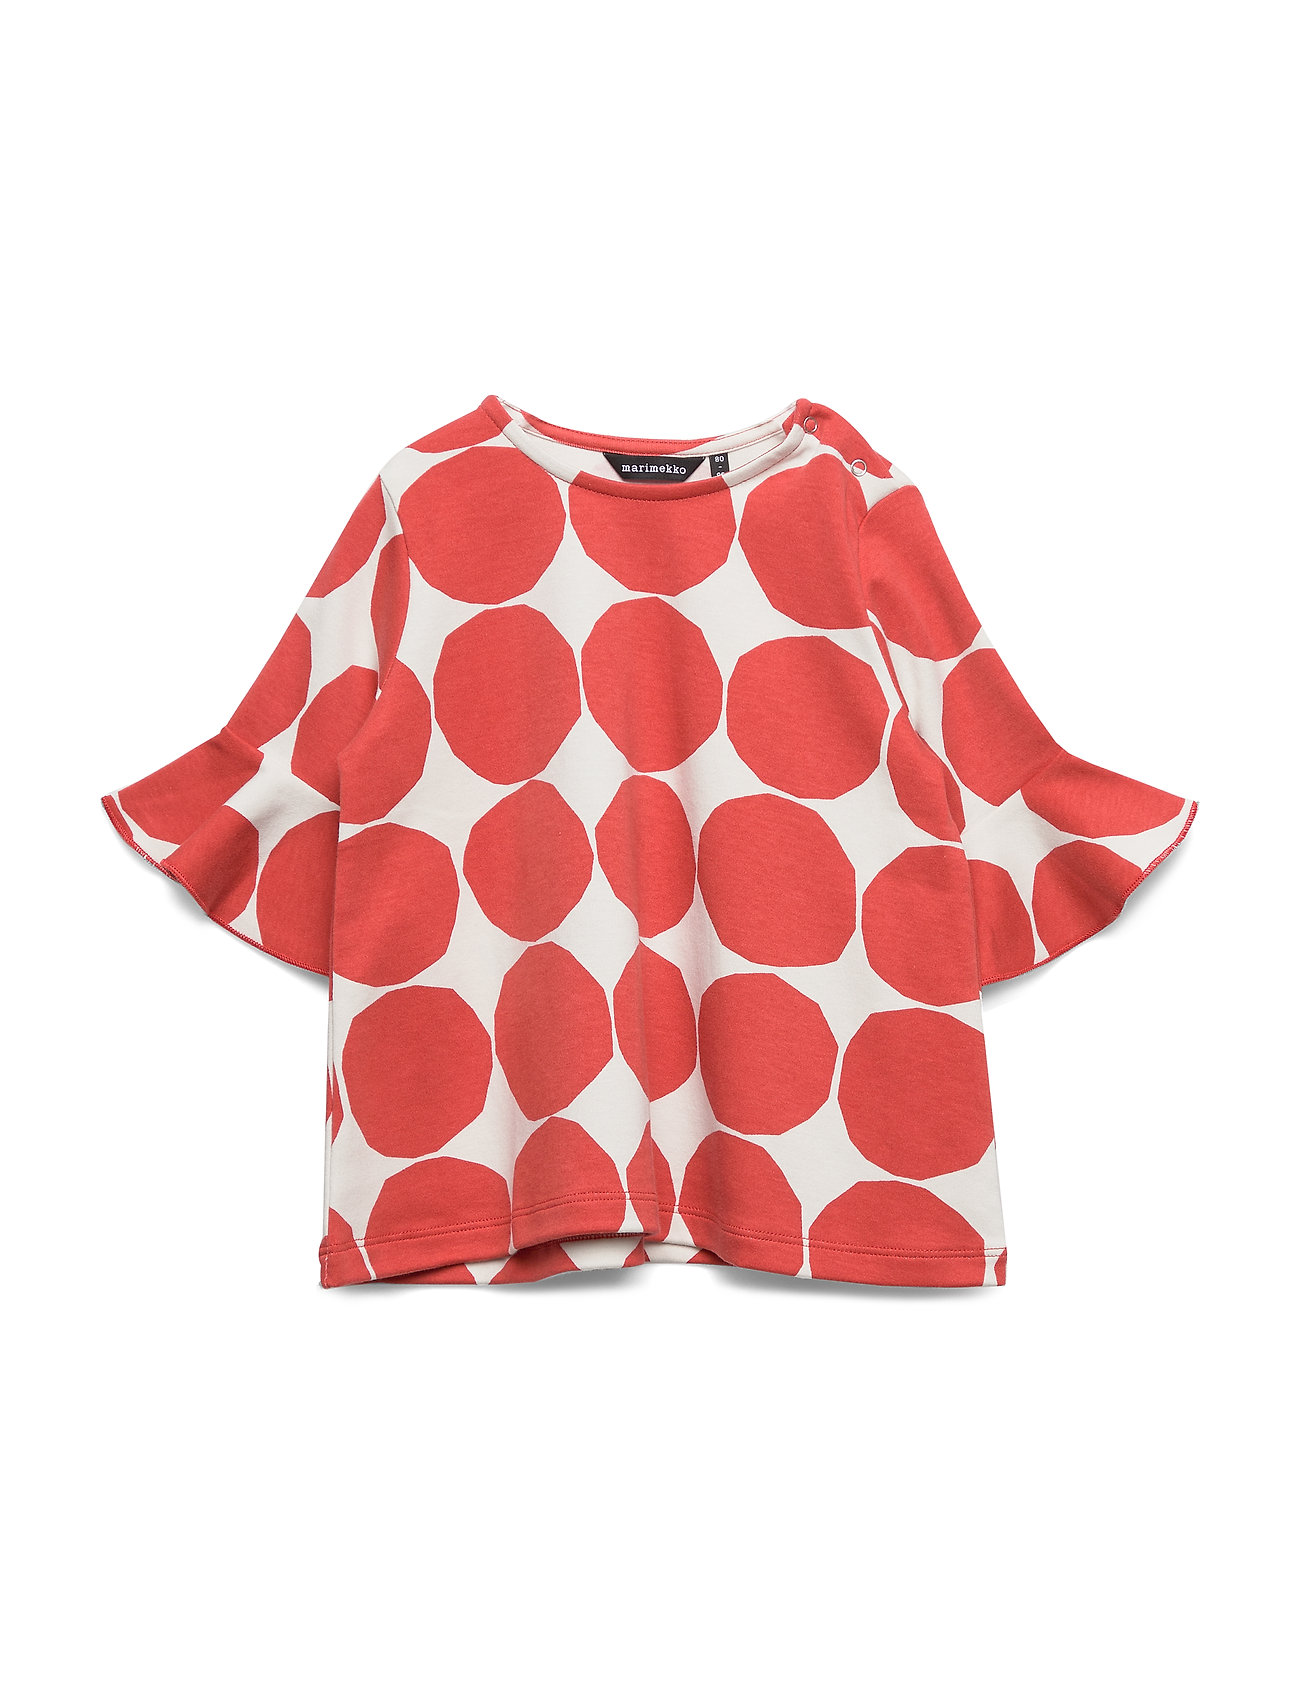 Marimekko RUUPERTTI MINI KIVET 1 Shirt - LIGHT GREY, ORANGE